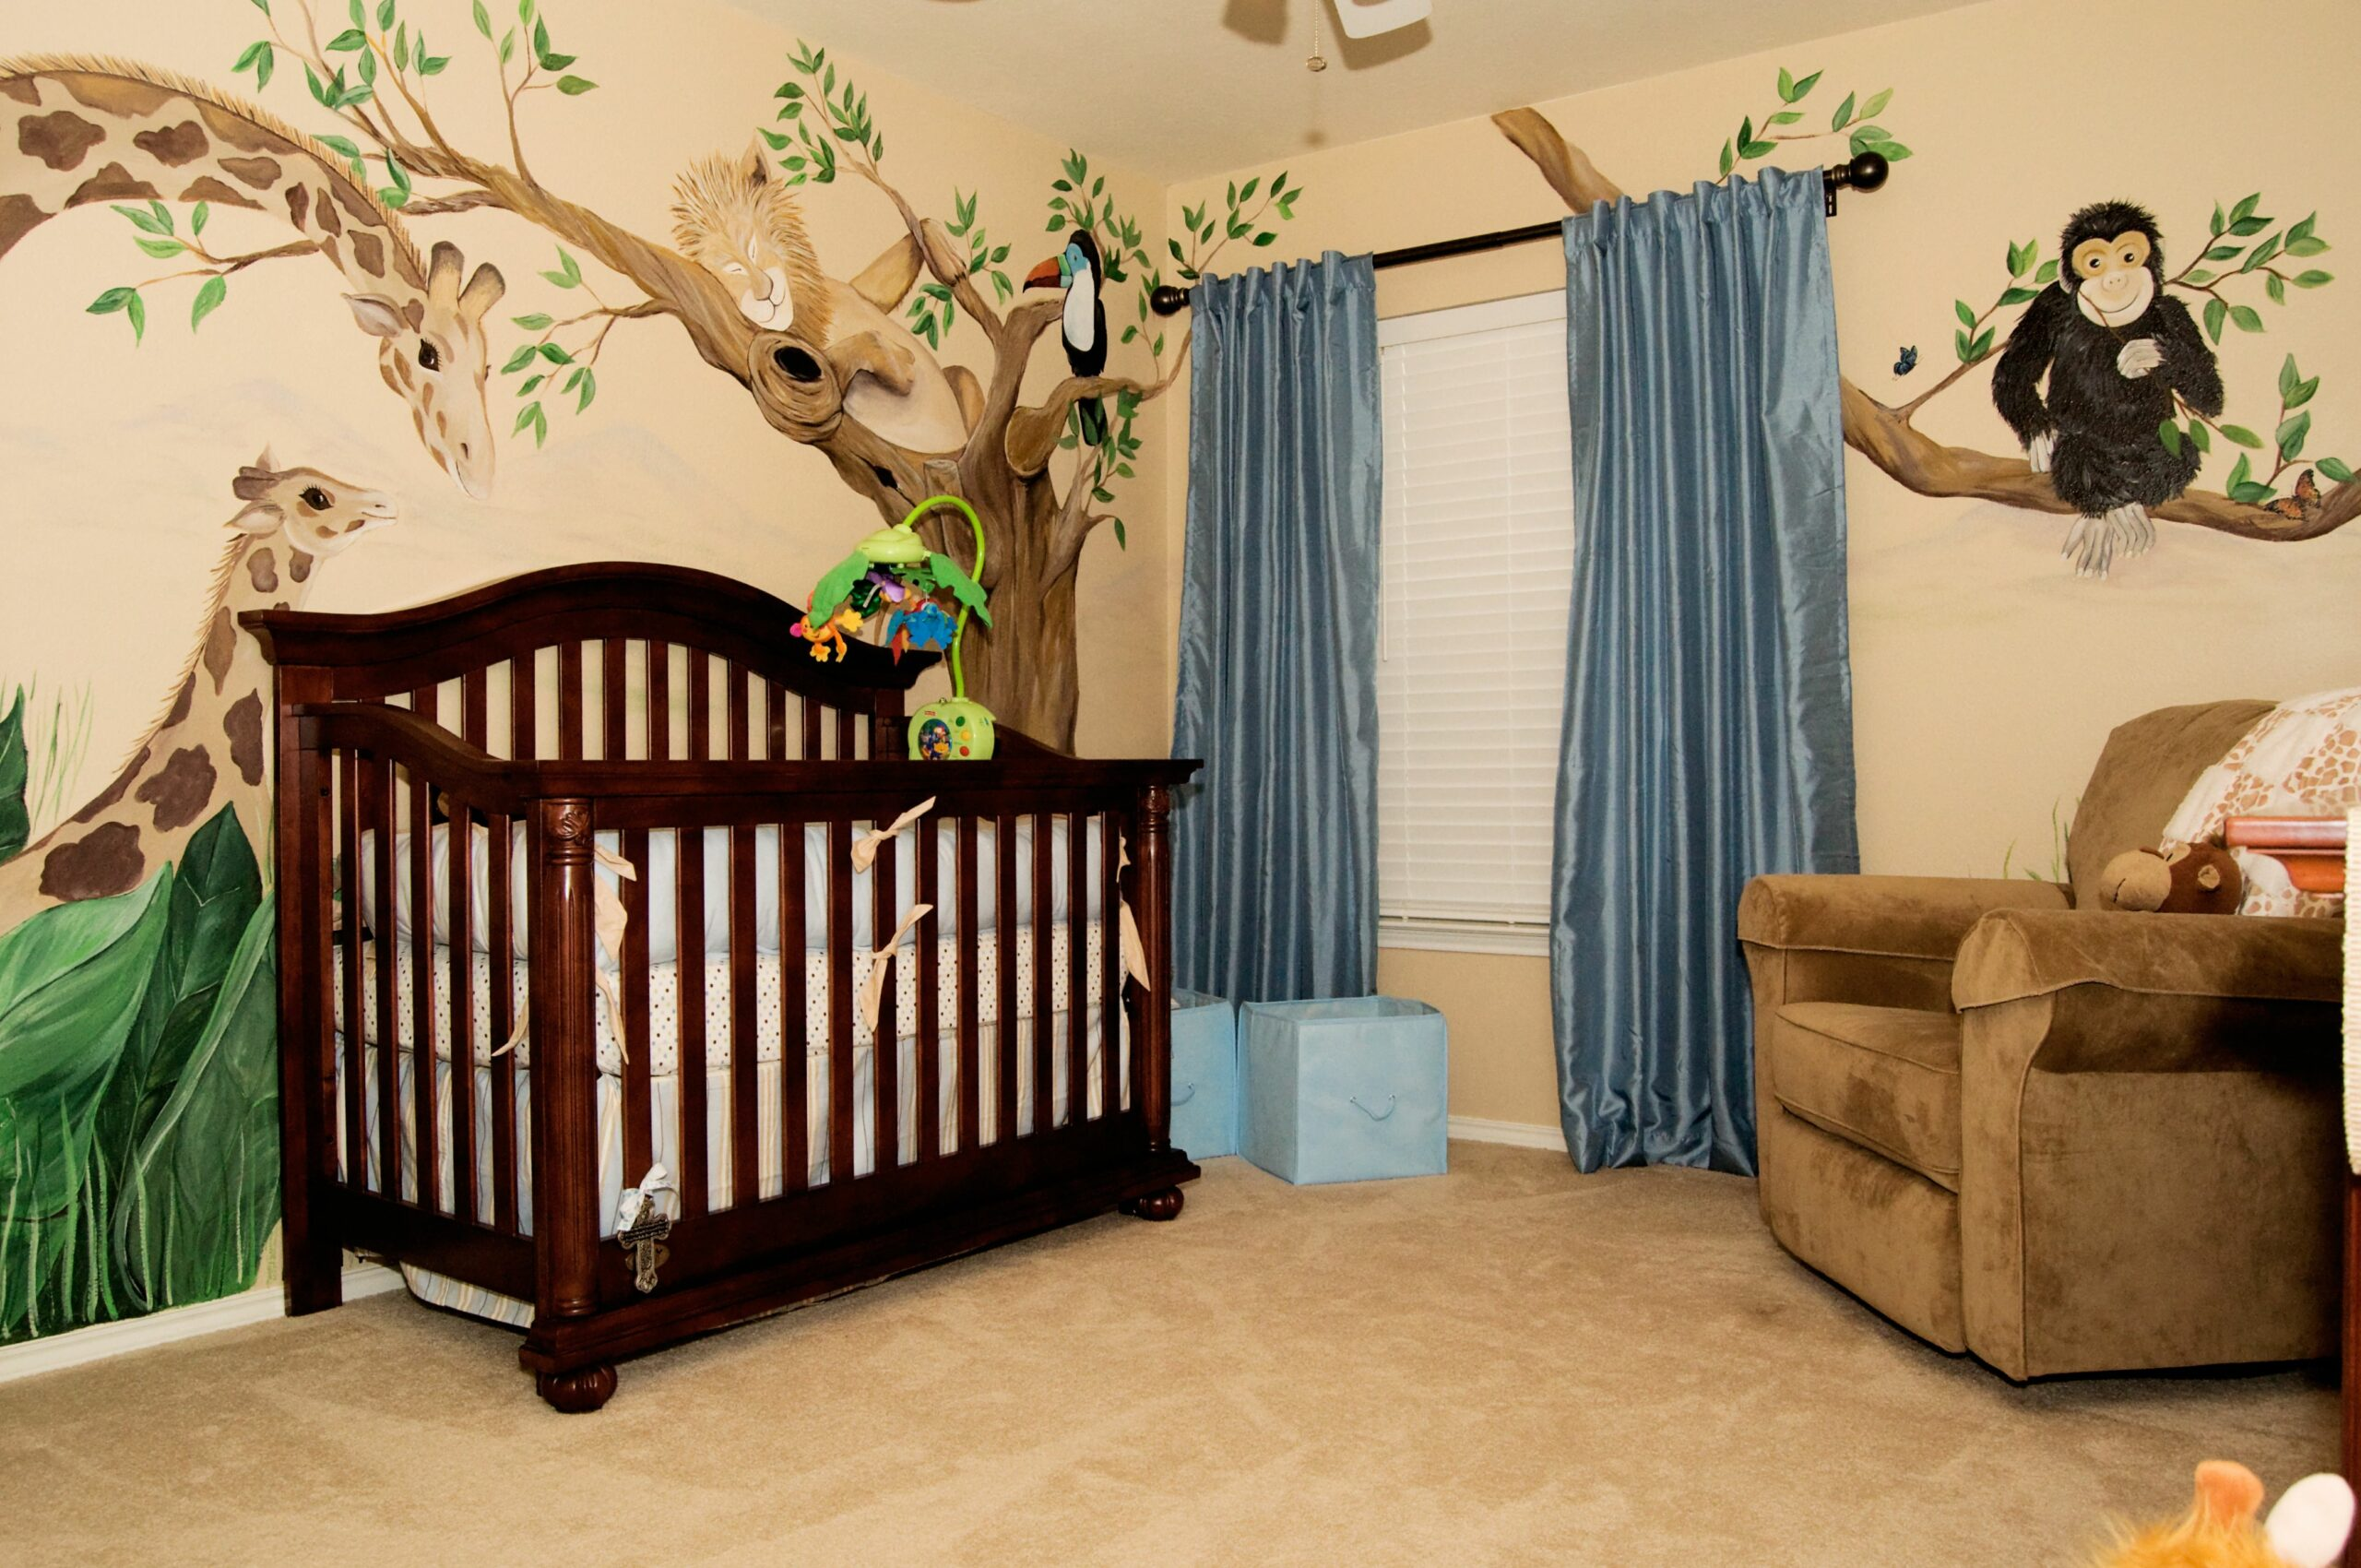 Adorable Baby Room Dcor Ideas Jungle Themed Bedroom Atmosphere ..